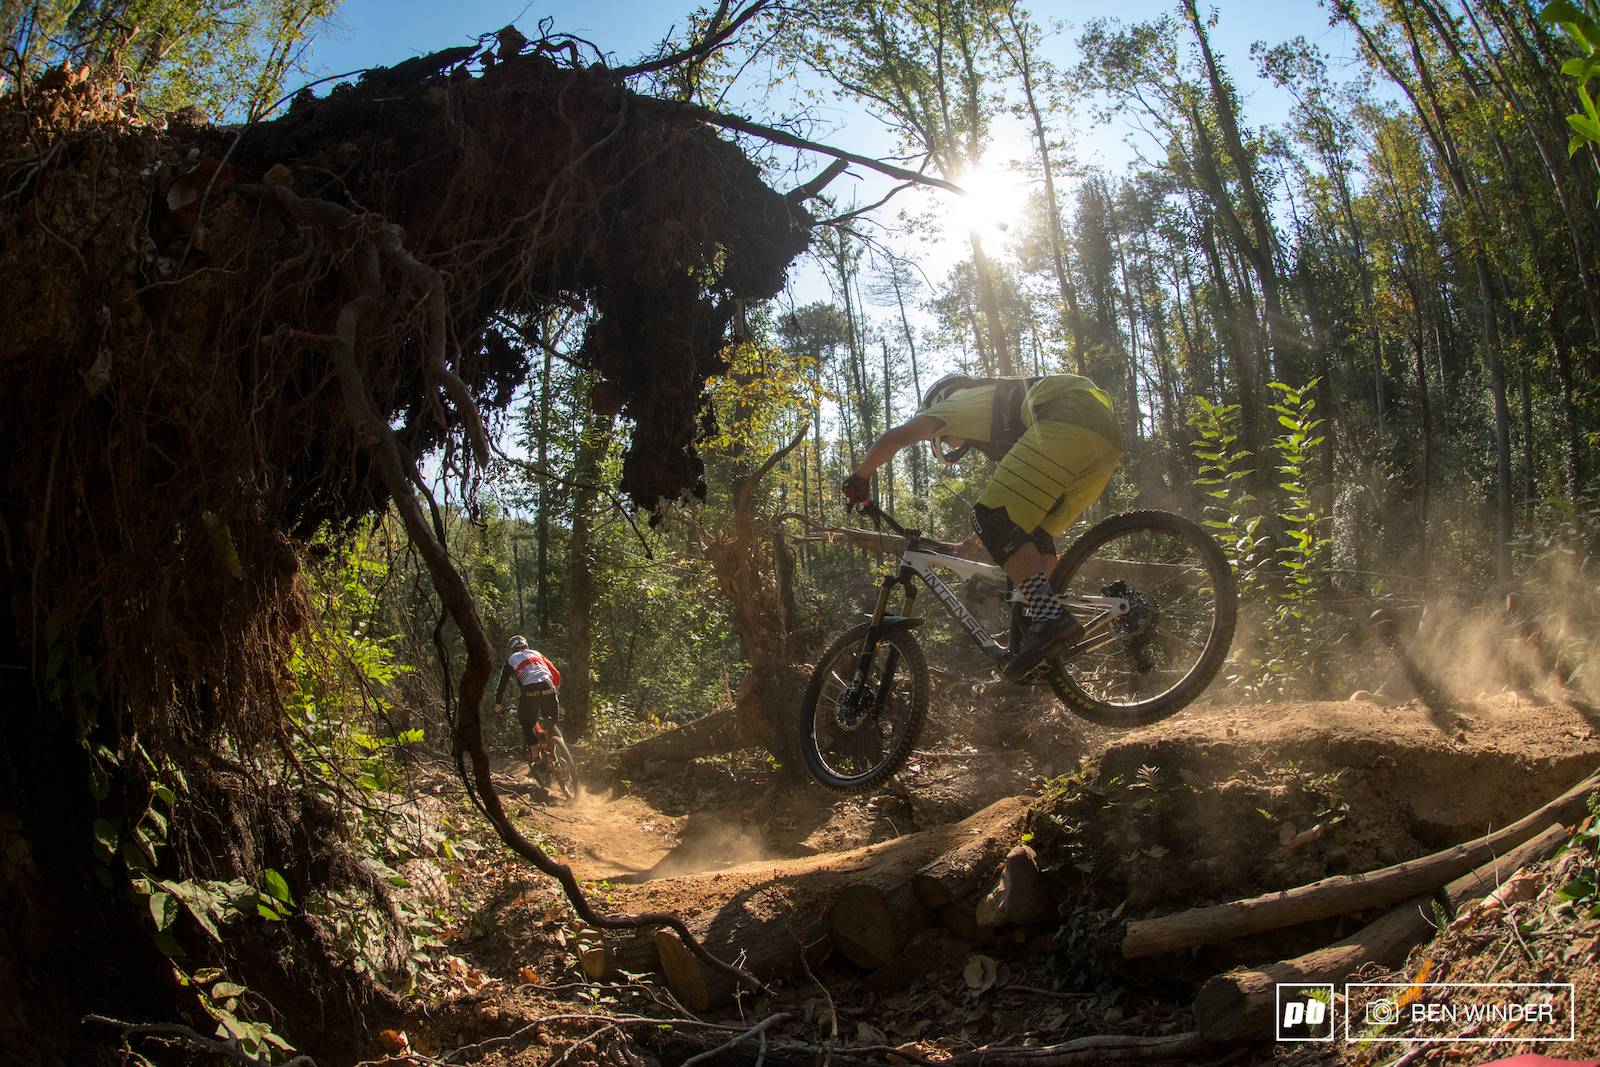 With a relatively dry spell in Liguria at the moment the dust is thick and the trails are slippery.